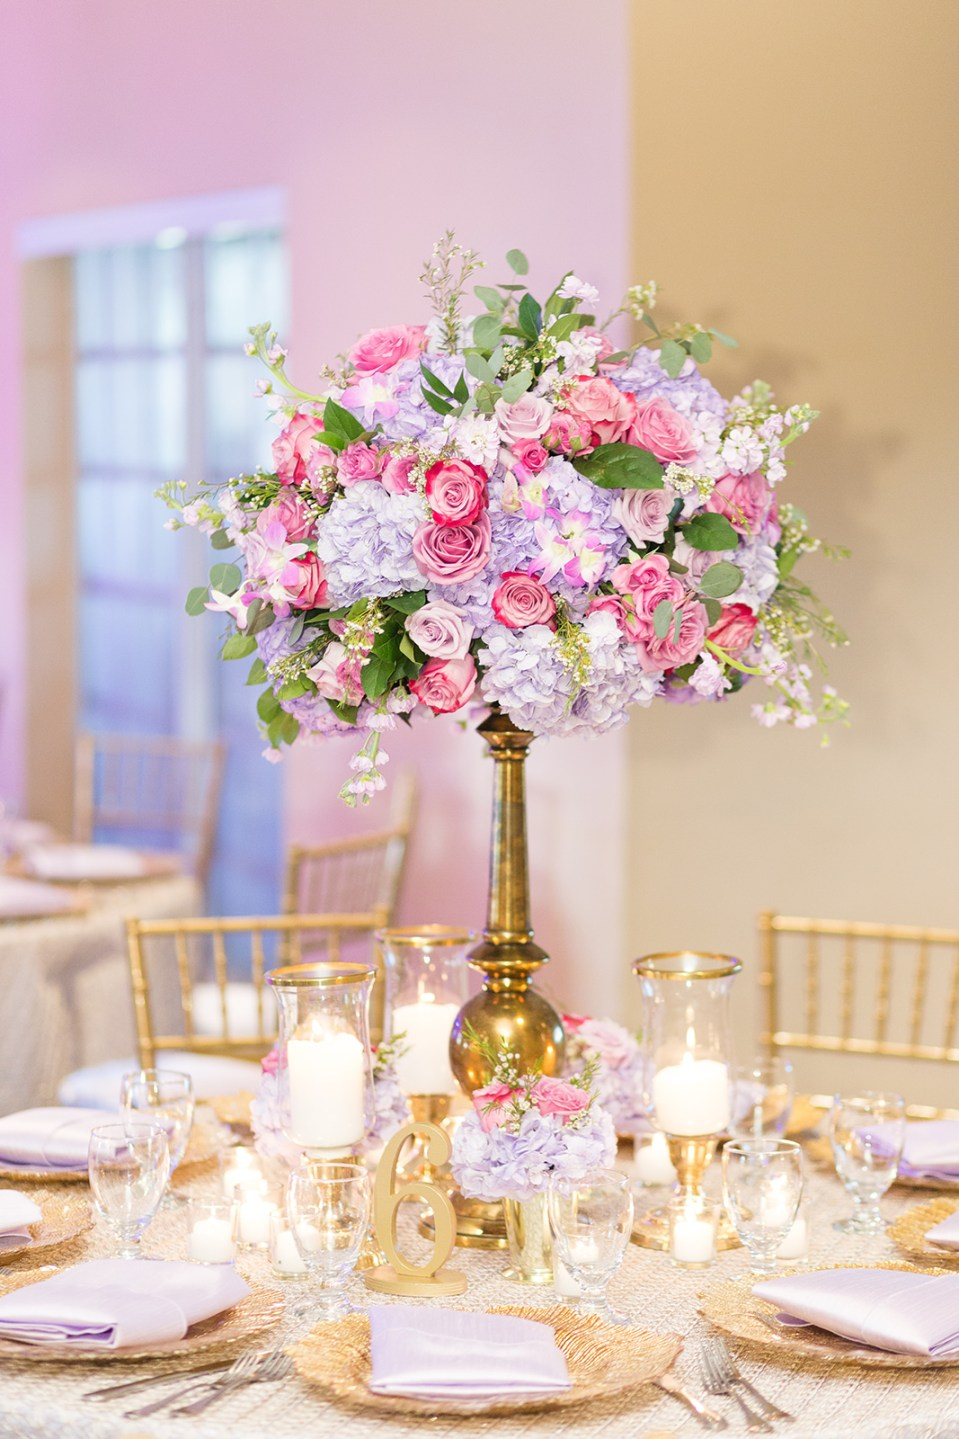 pink and purple flowers in large gold vase at wedding reception